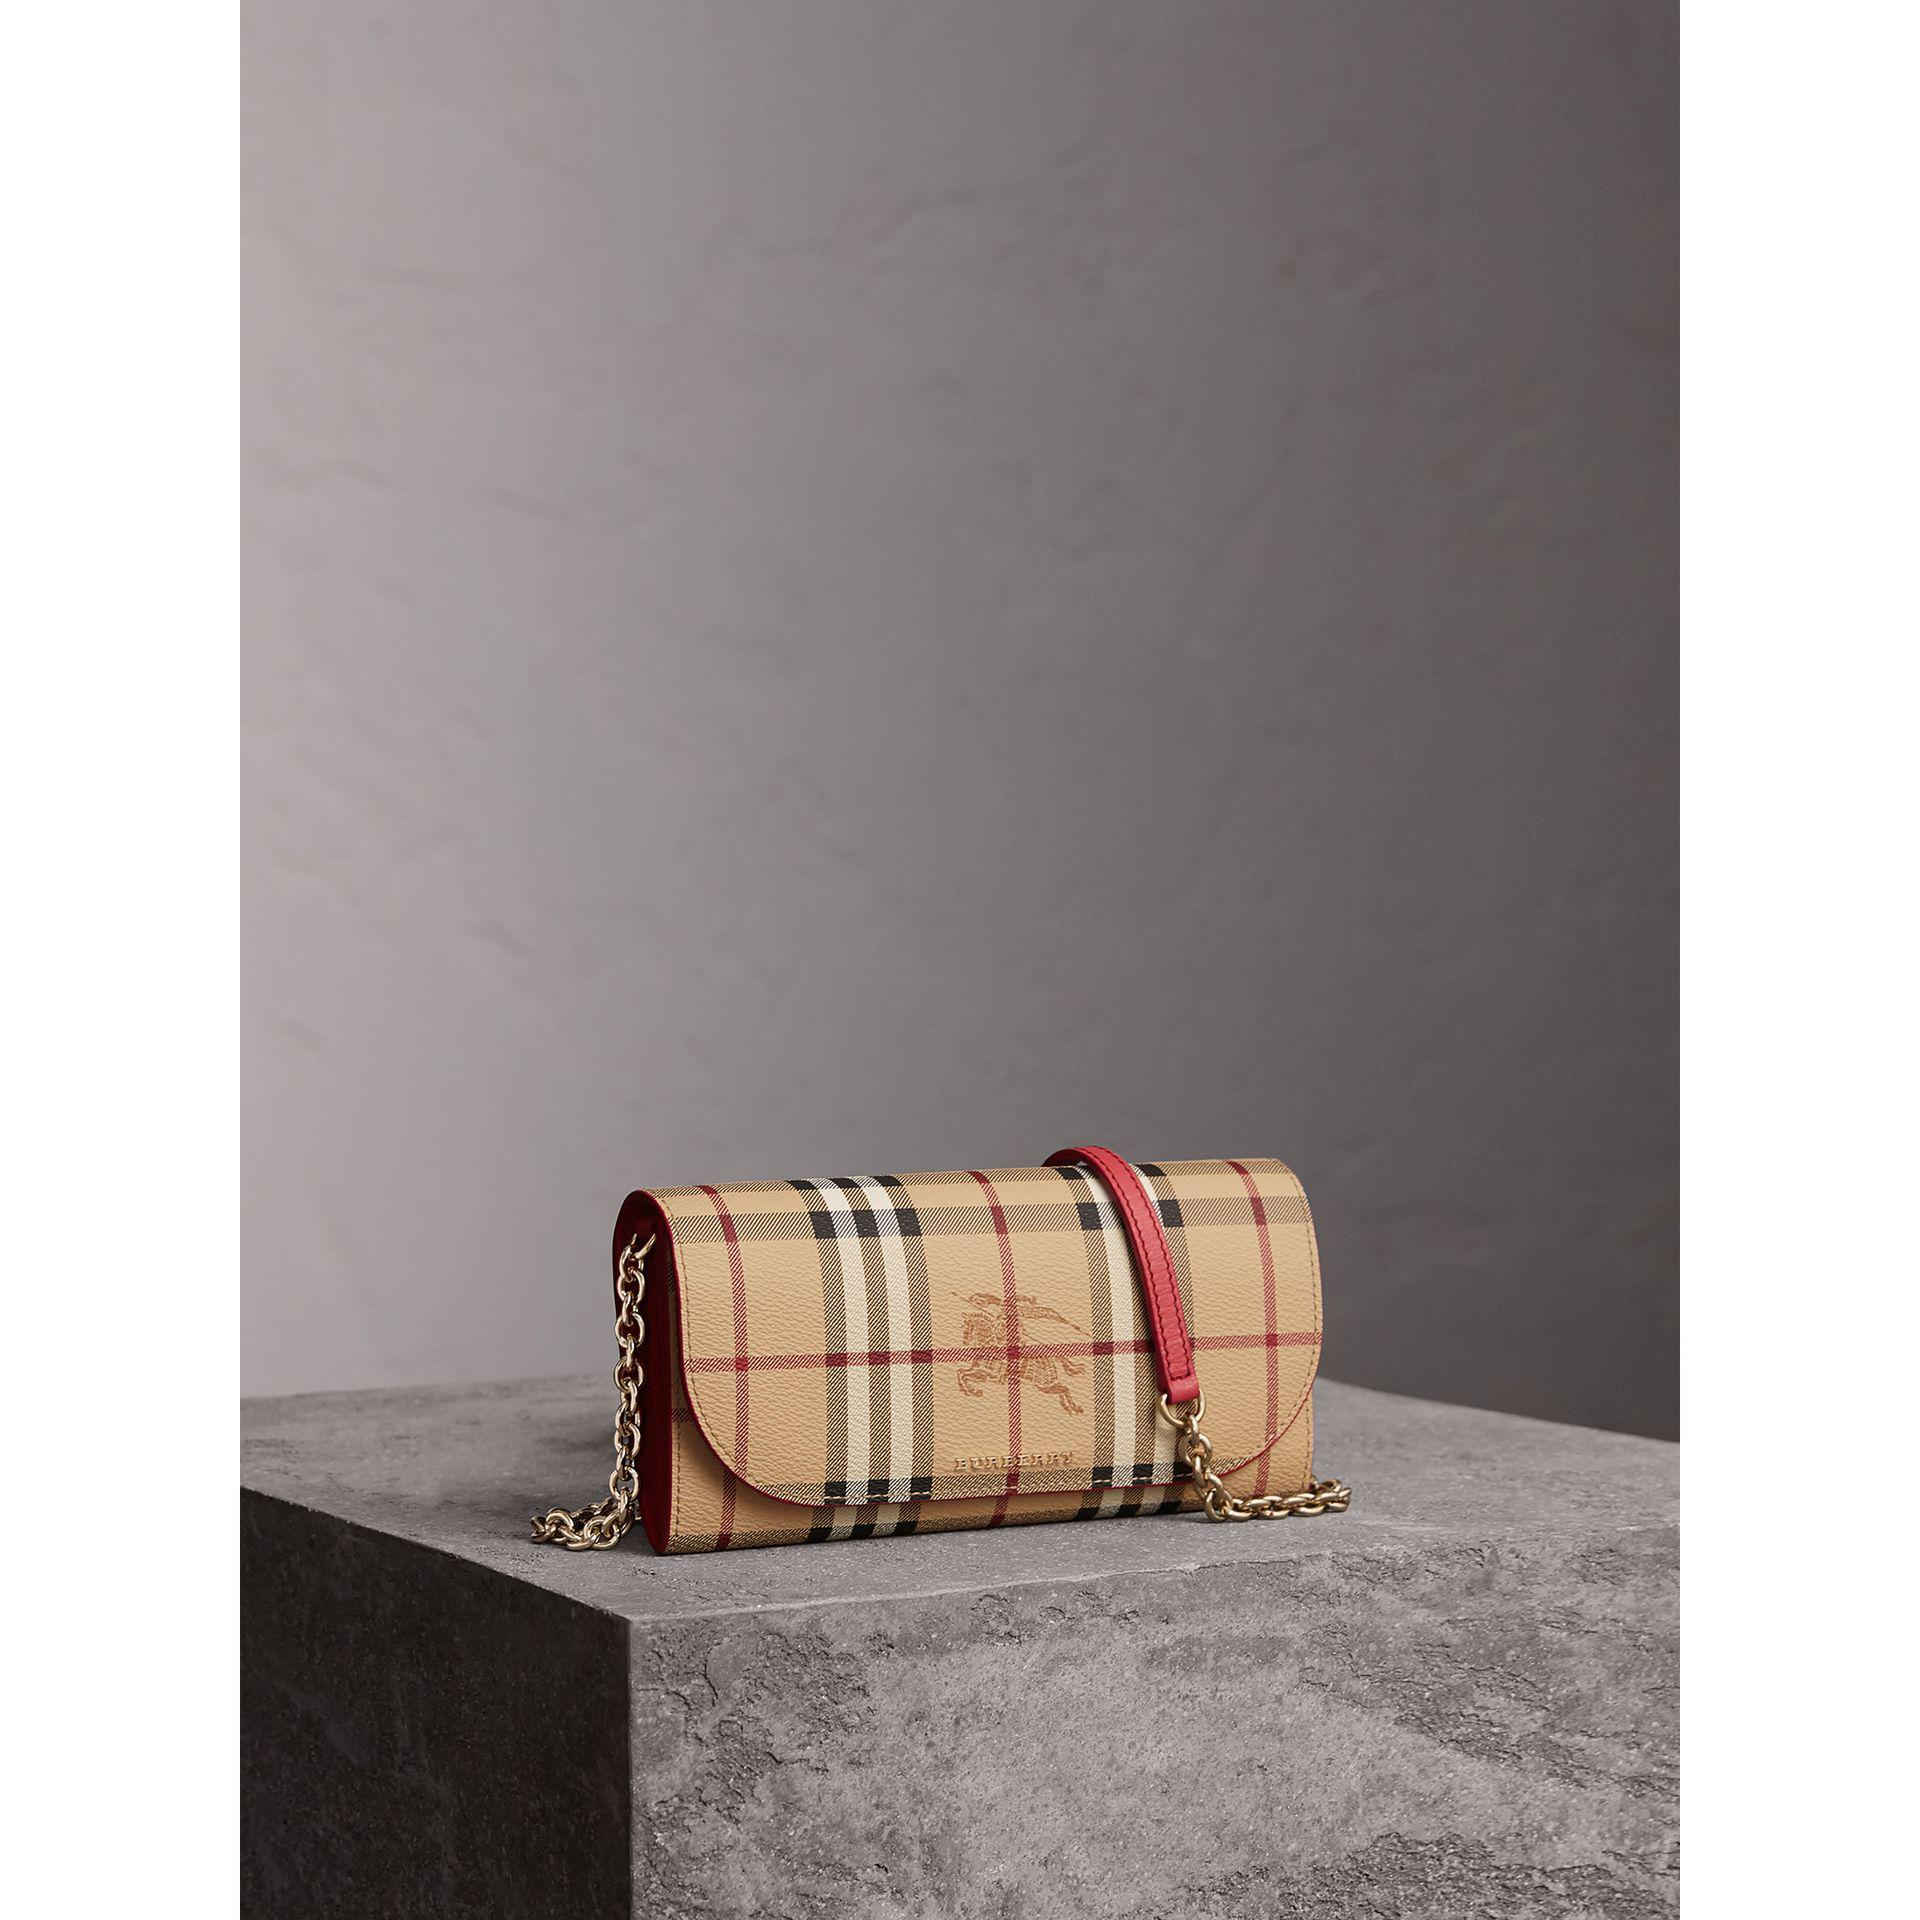 Best Wholesale For Sale Burberry Leather Trim Haymarket Check Wallet with Chain Discount Manchester Great Sale Good Selling Cheap Price Buy Cheap For Cheap Cheap Official TgiKr